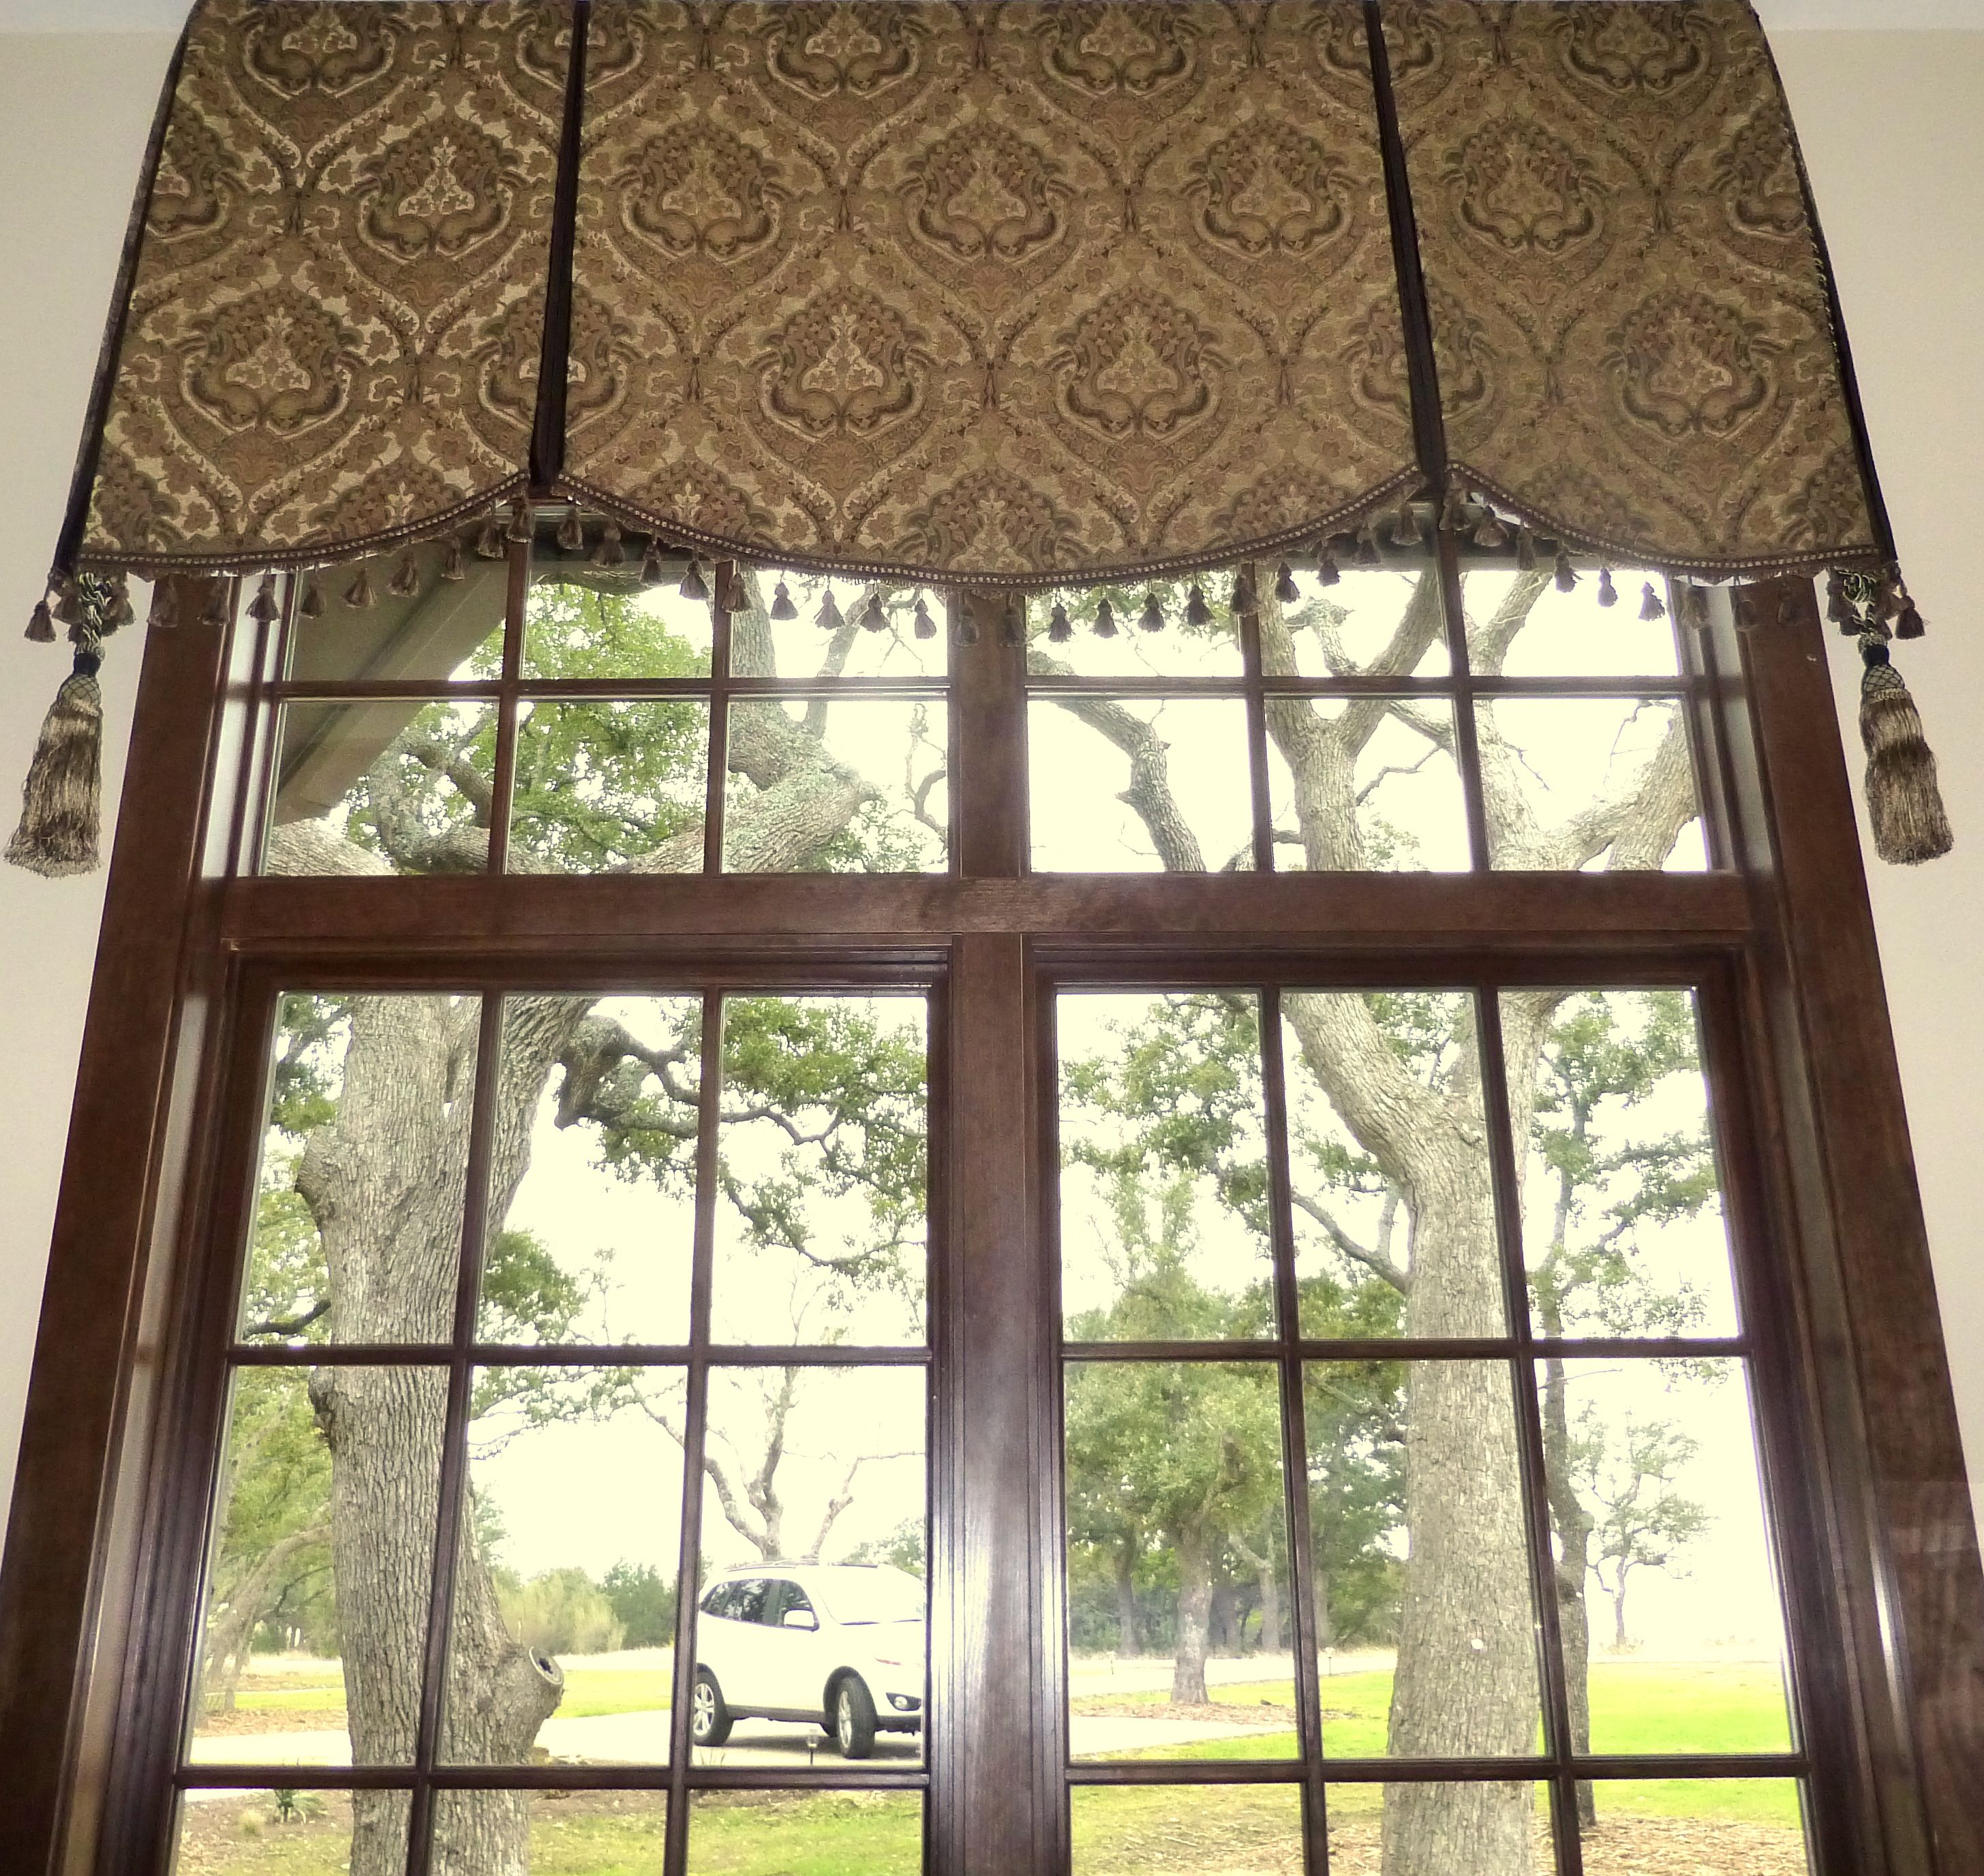 Soft cornice / valance over transom window.